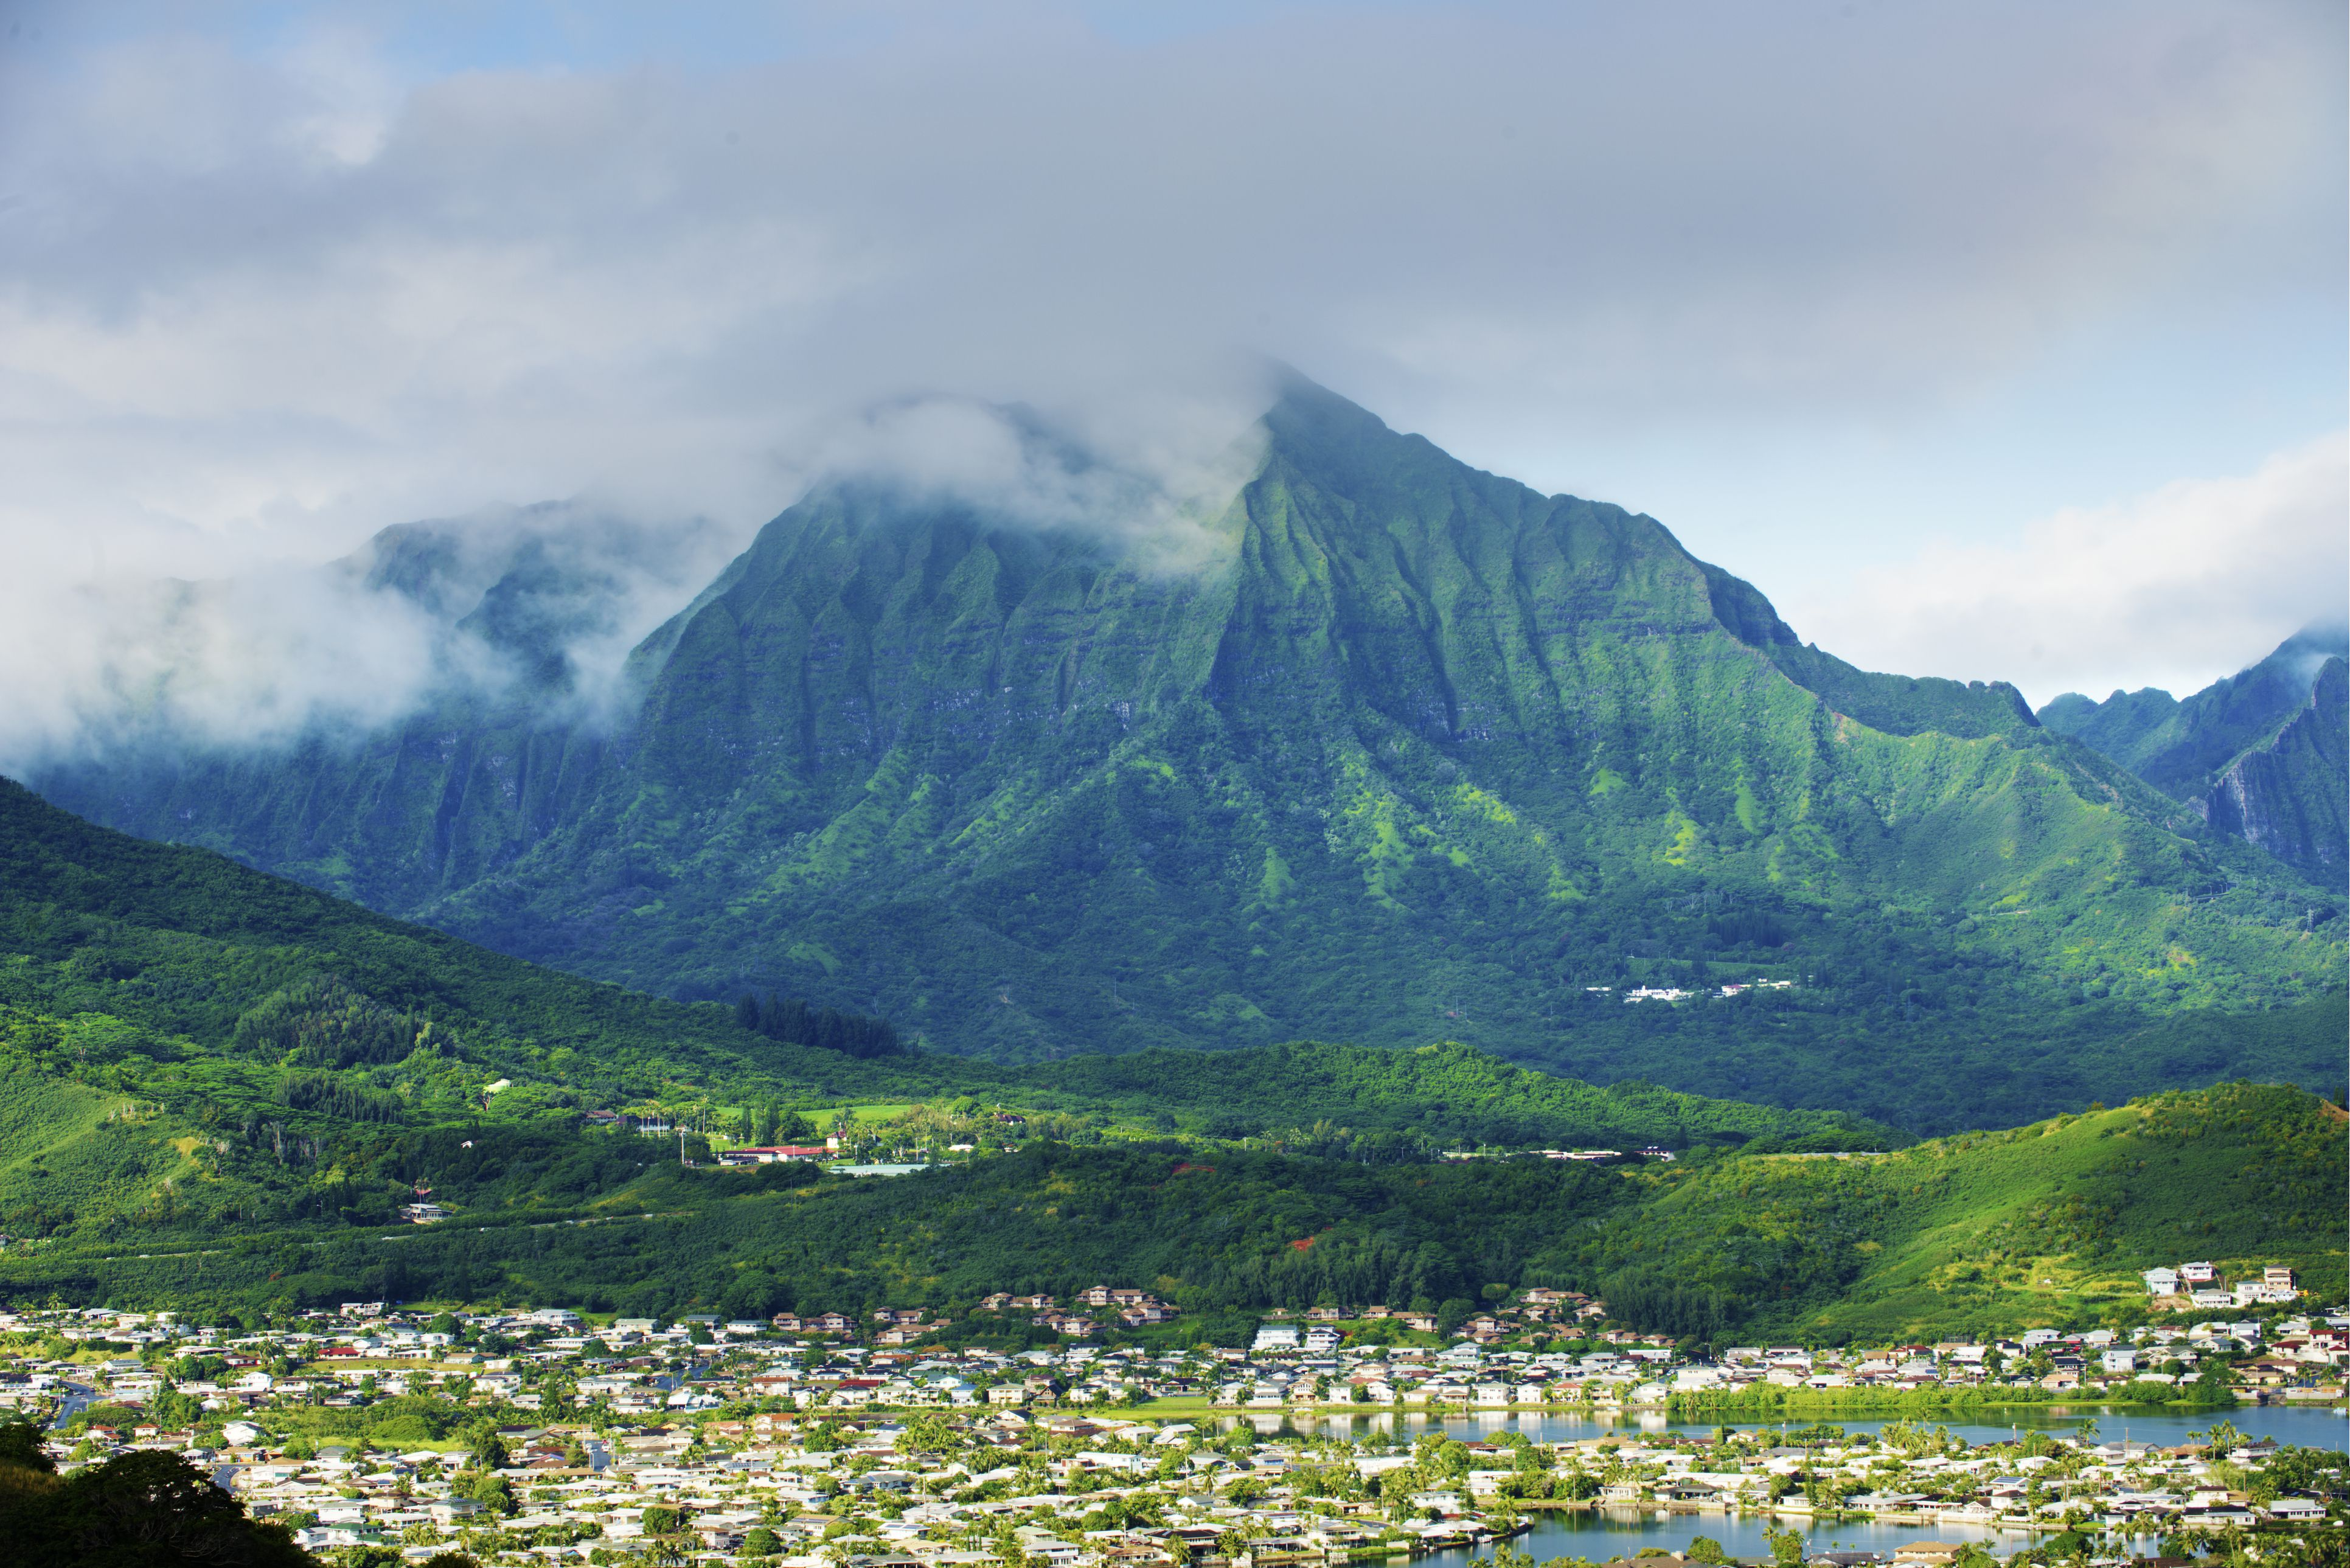 Planning A Road Trip >> Driving Tour of Hawaii's Mount Tantalus and Round Top Drive